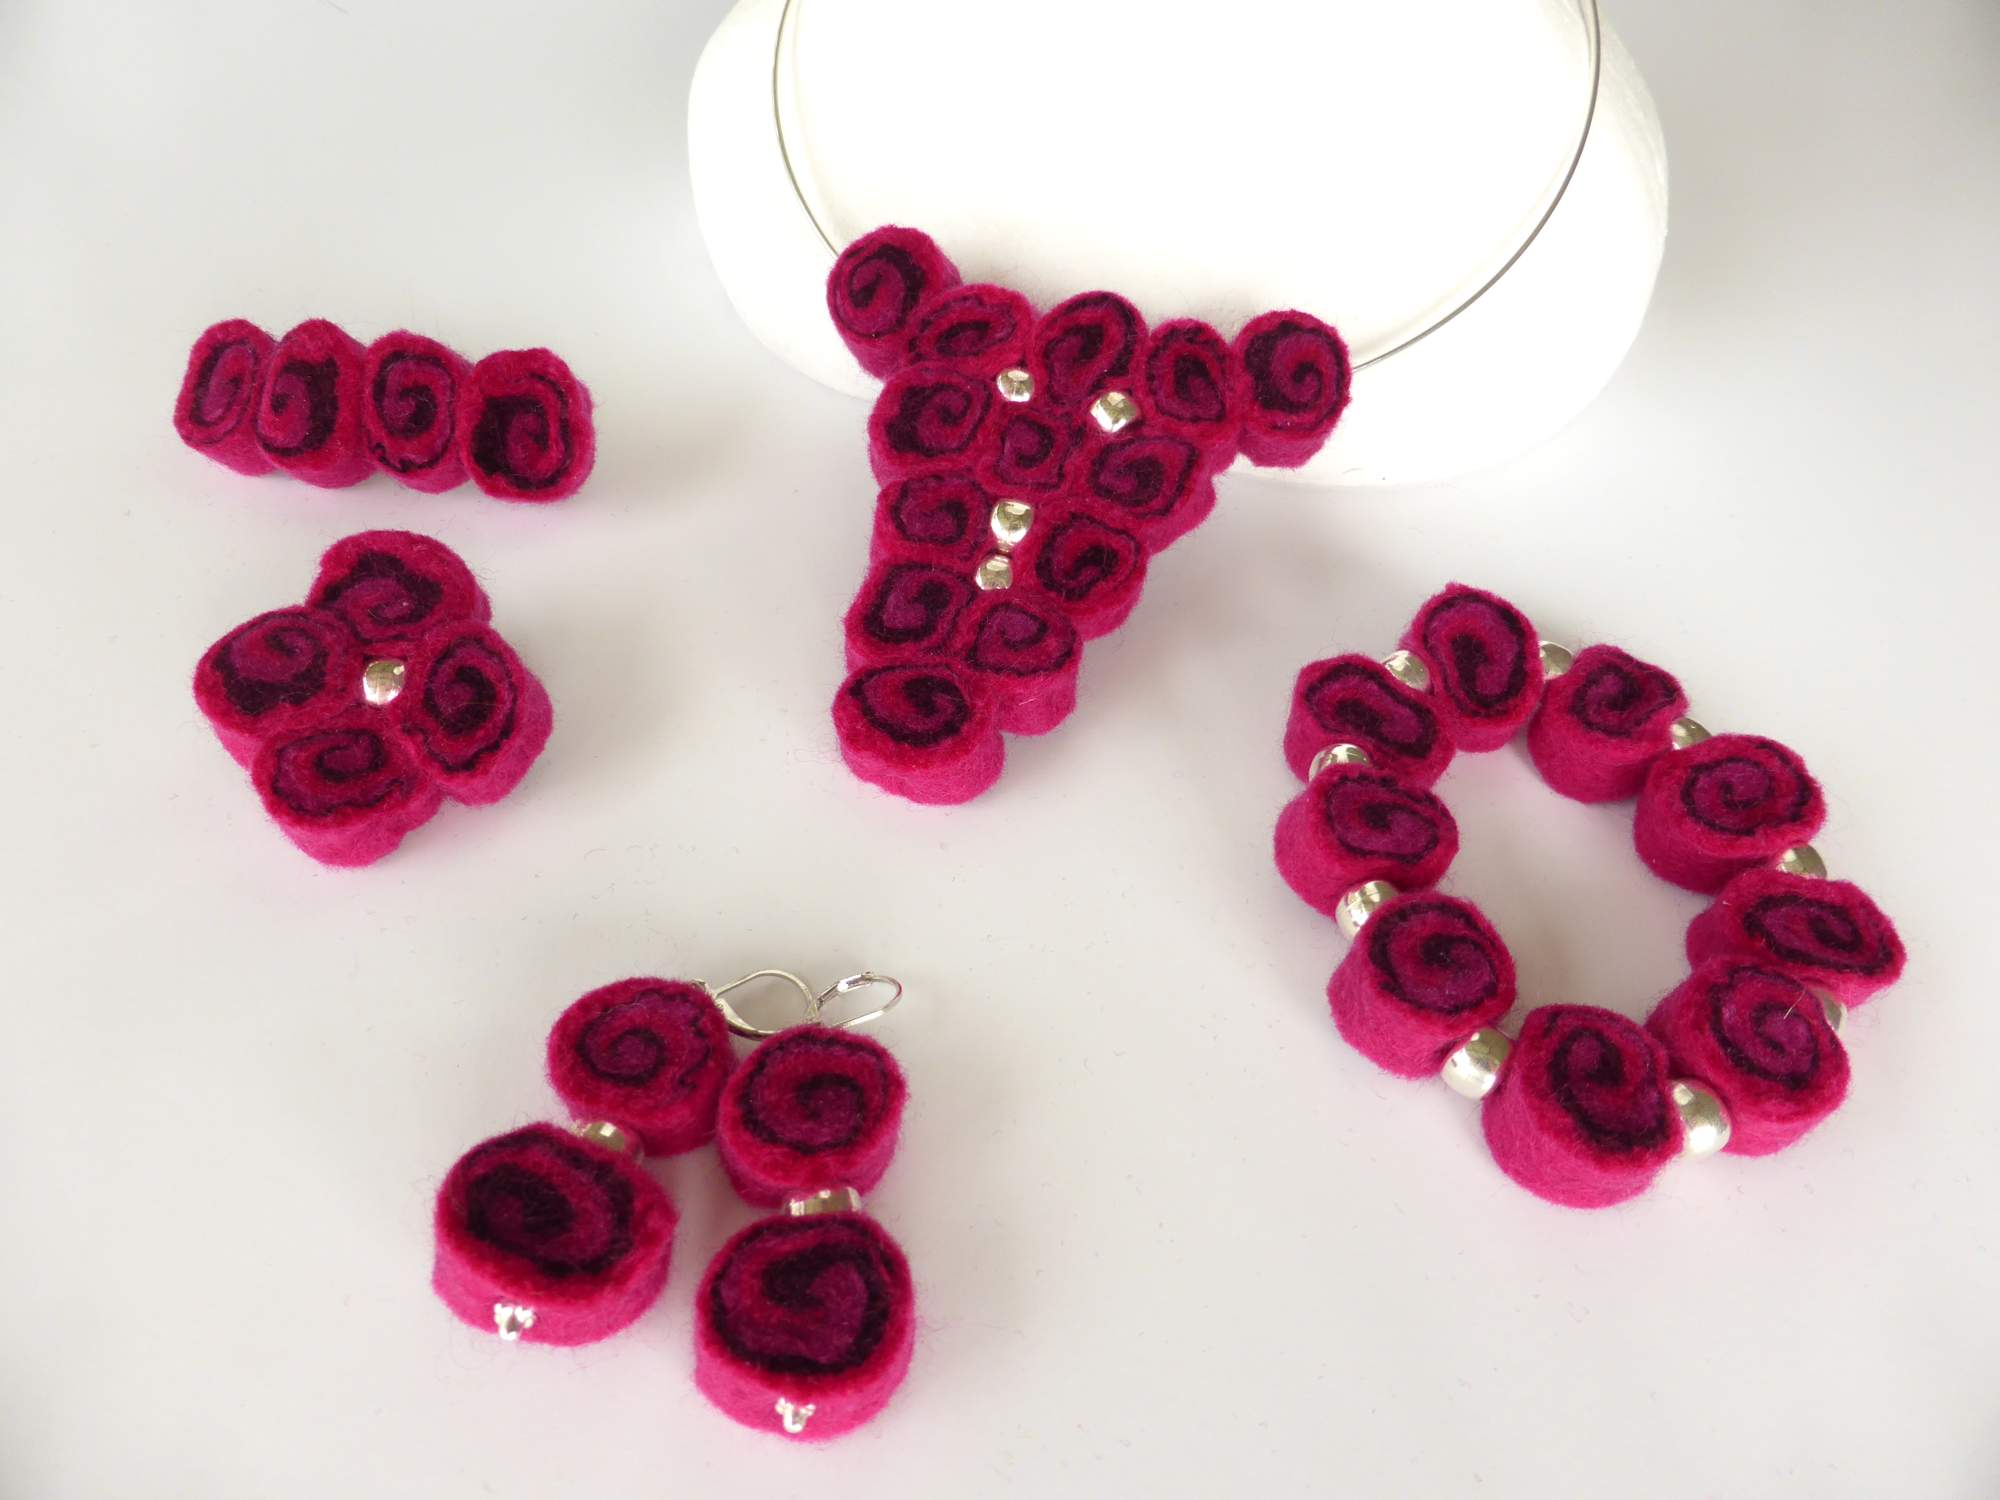 Pink Felt Spiral Jewellery by Andrea McCallum